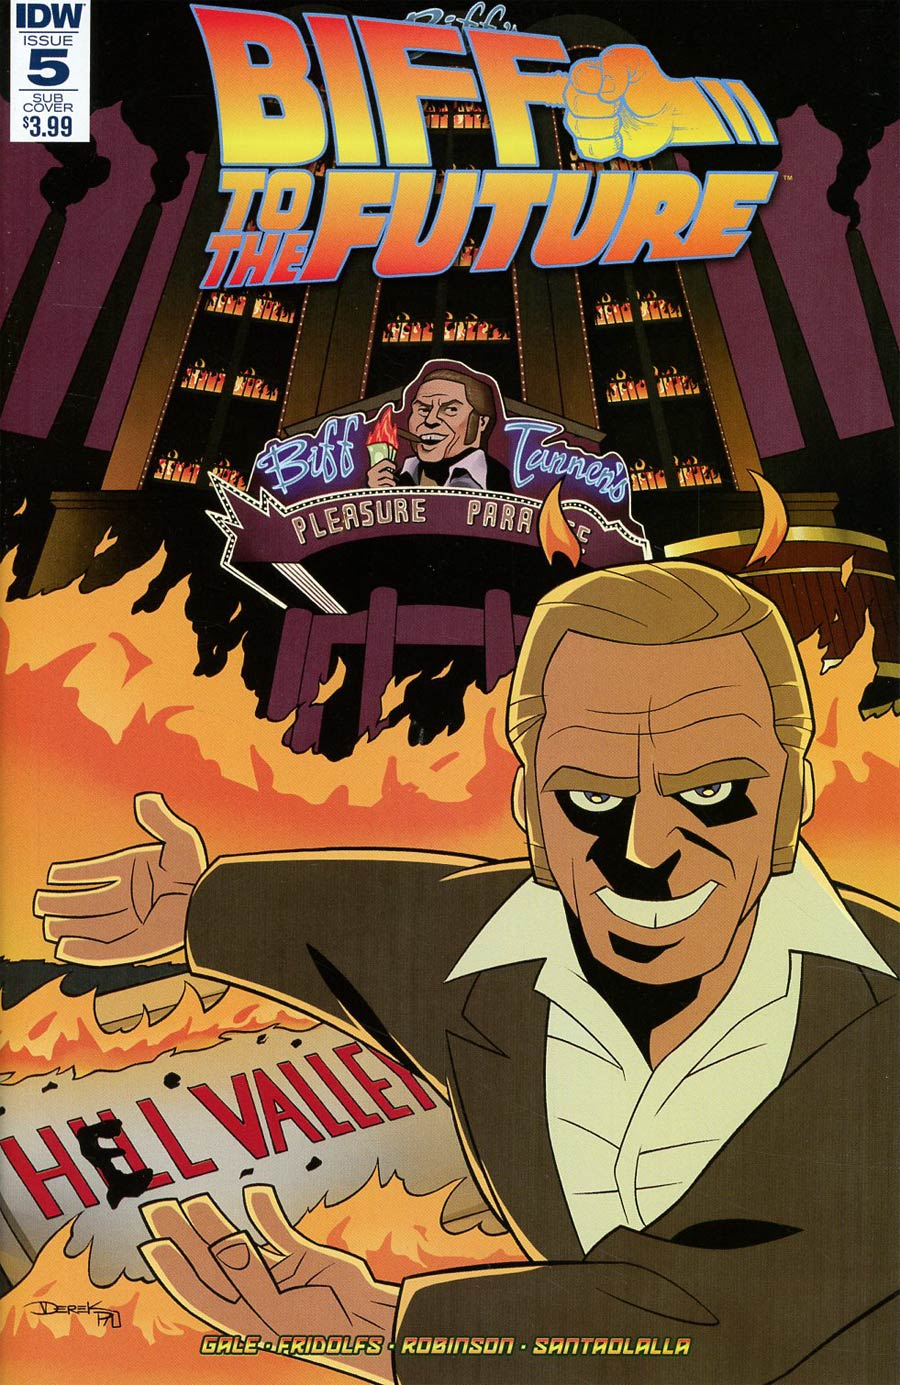 Back To The Future Biff To The Future #5 Cover B Variant Derek Fridolfs Subscription Cover